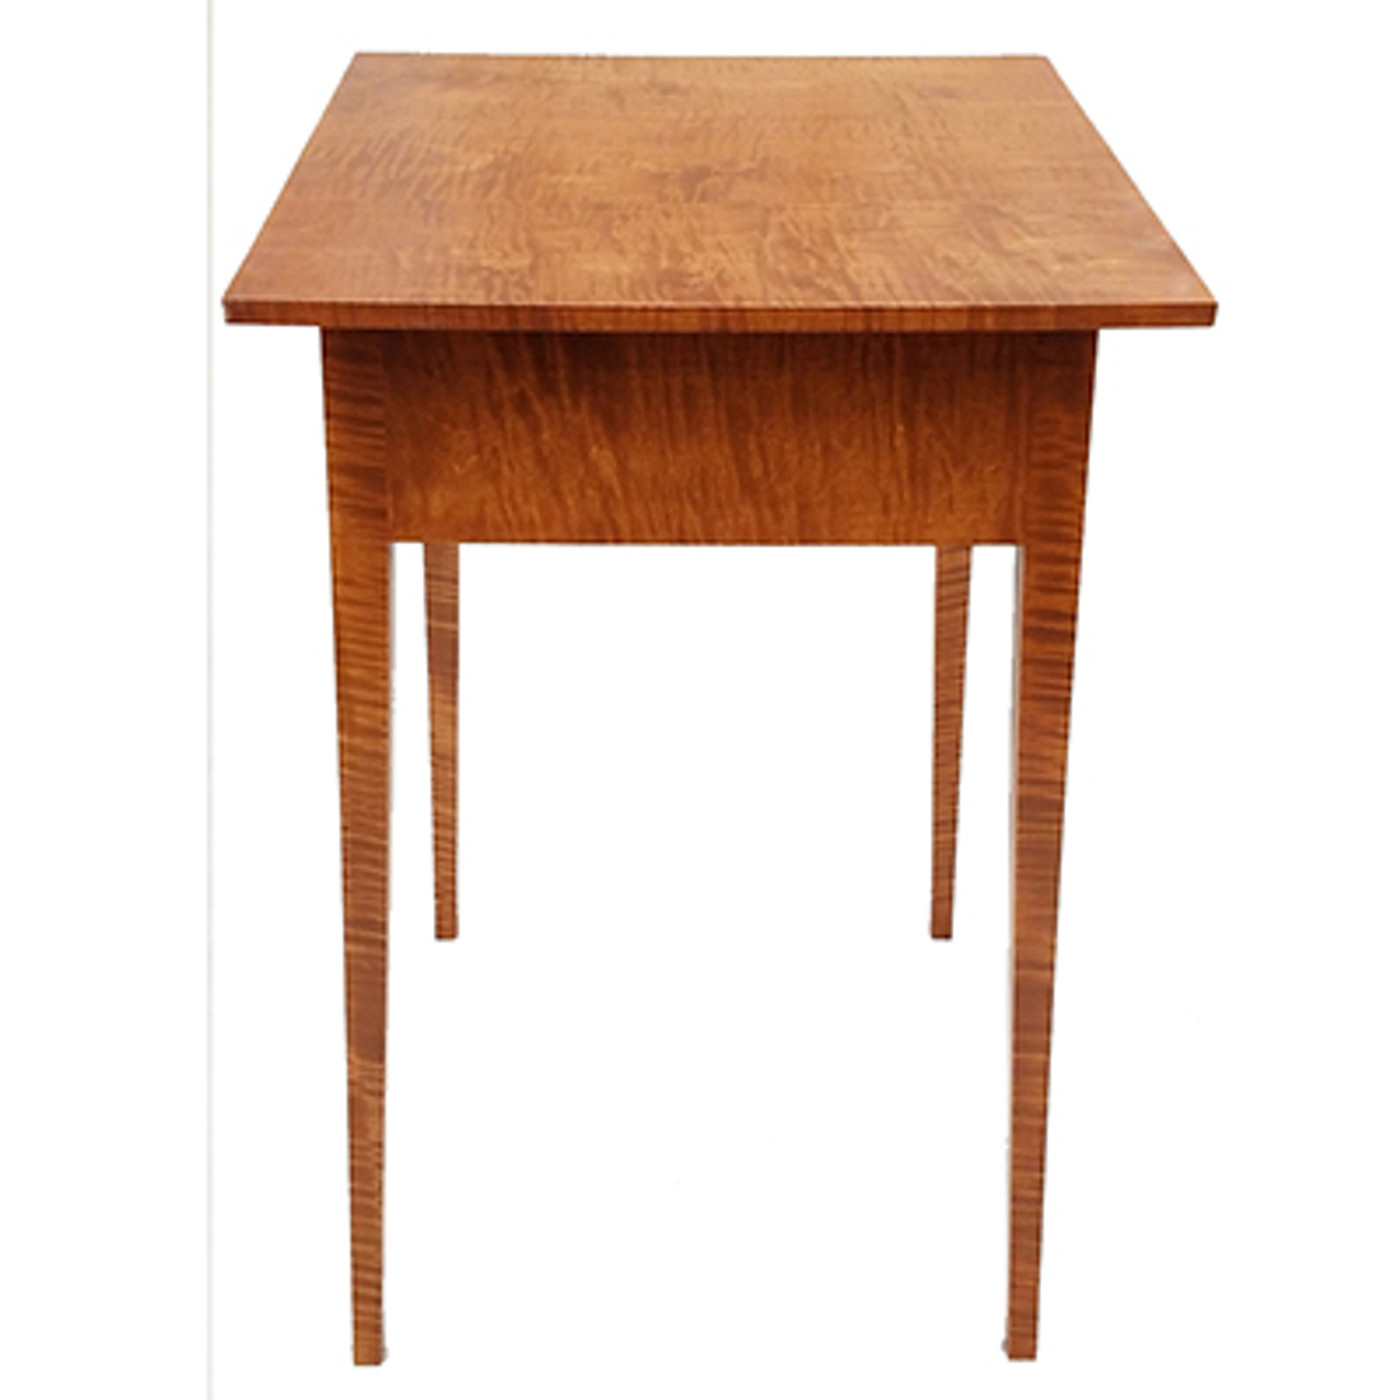 Hepplewhite Side Table without drawer